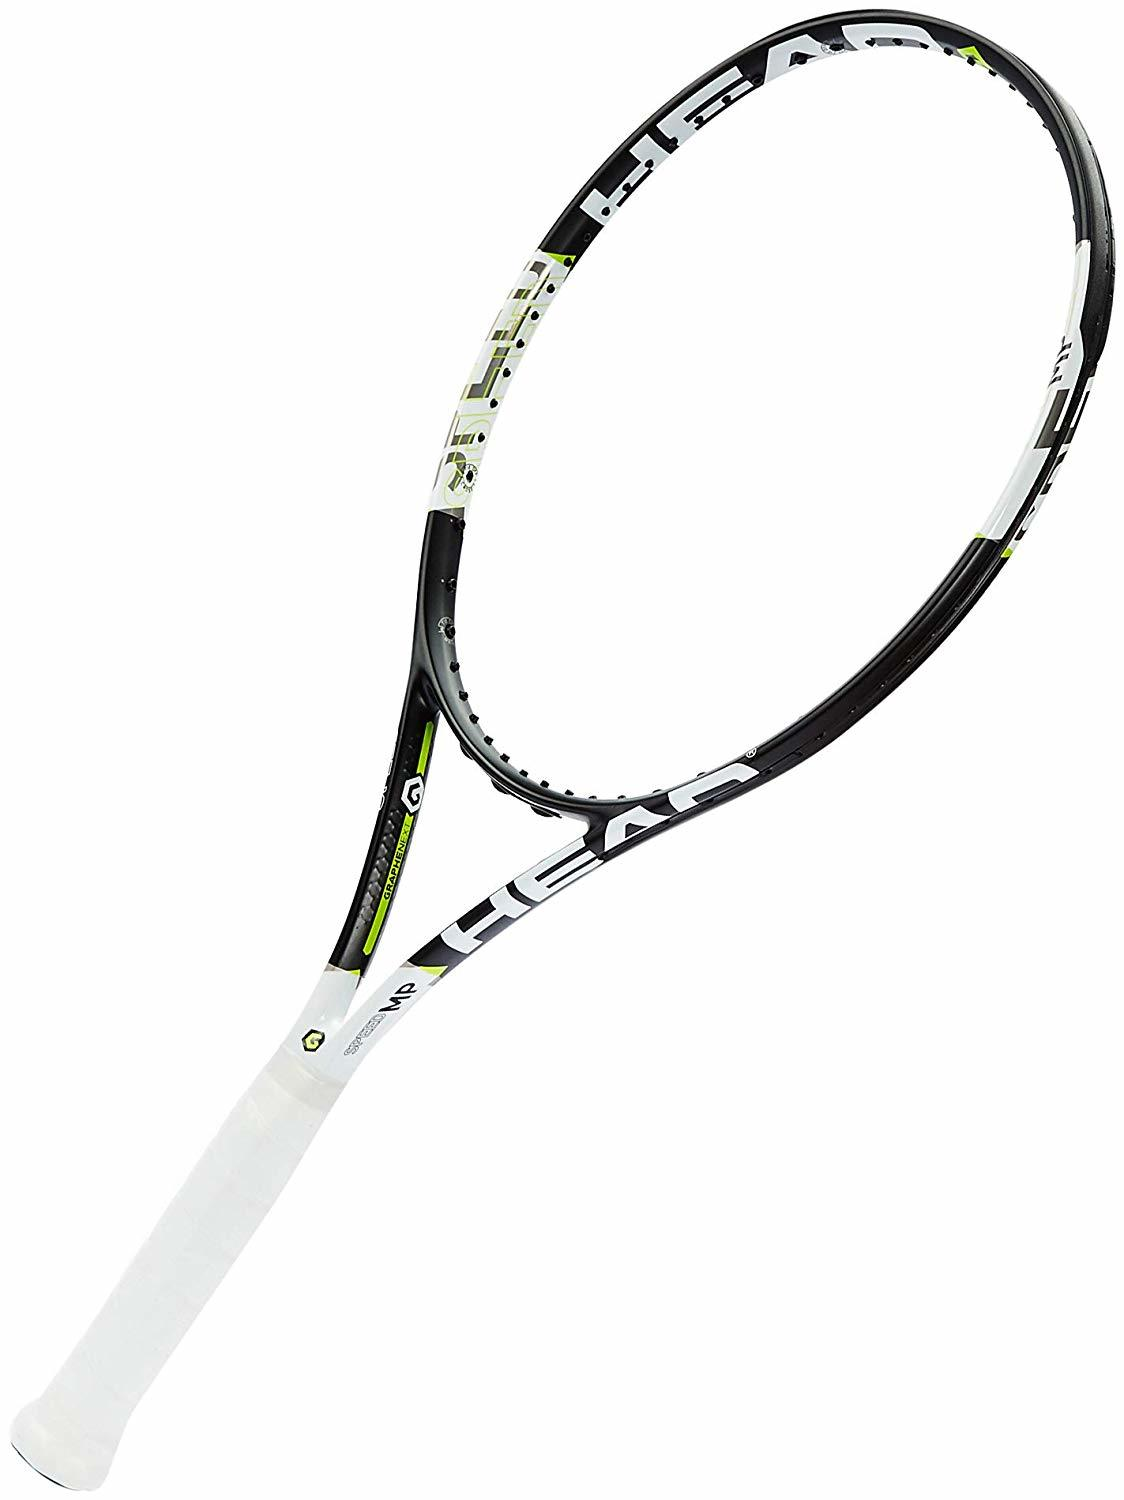 Graphene XT Speed MP.jpg